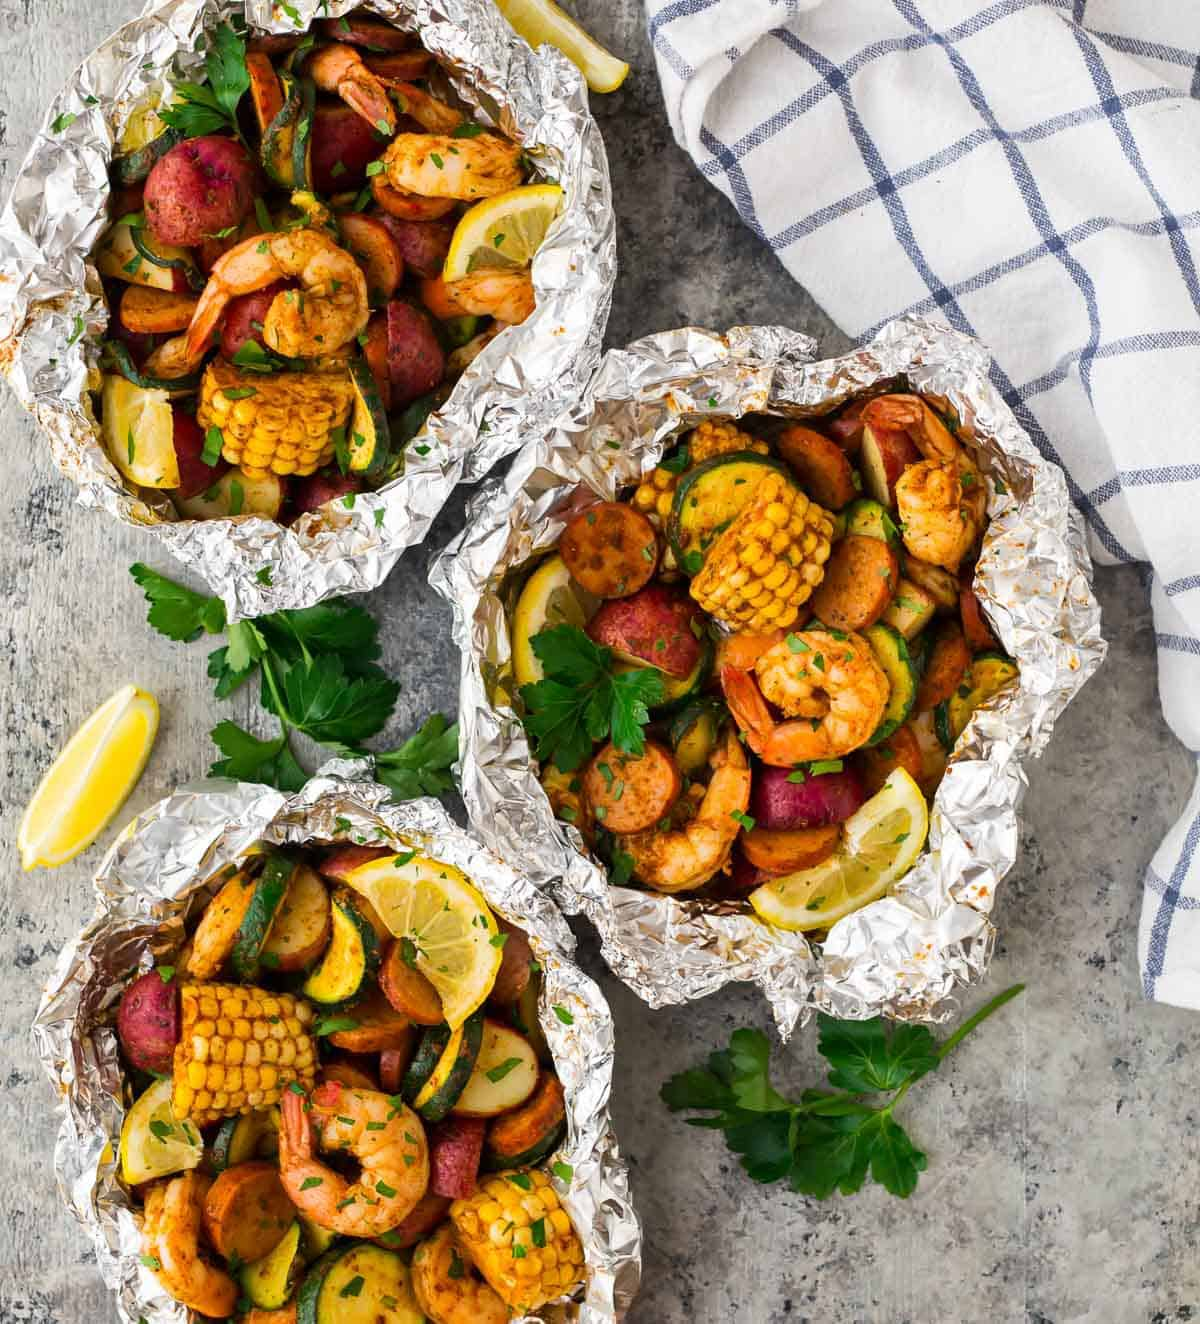 Three foil packets with Cajun shrimp, sausage, and vegetables with a blue striped towel and lemon wedge